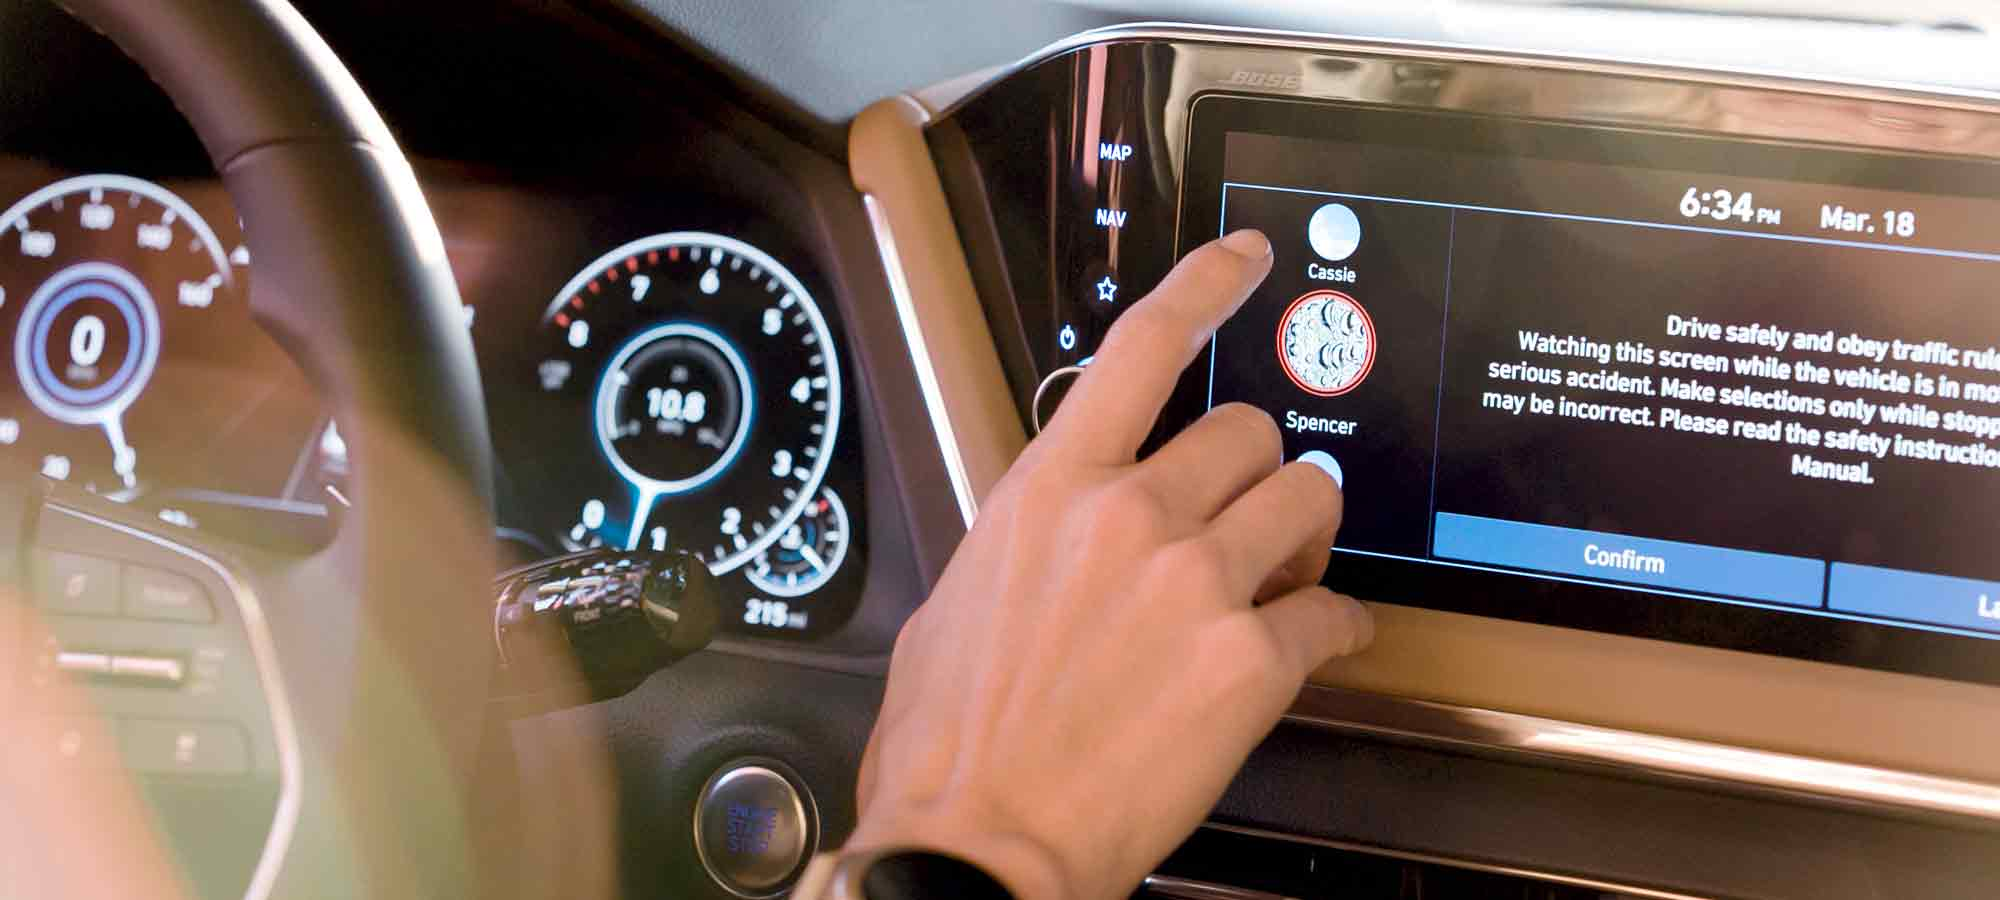 Automotive Cybersecurity Solutions For Connected Car Technology